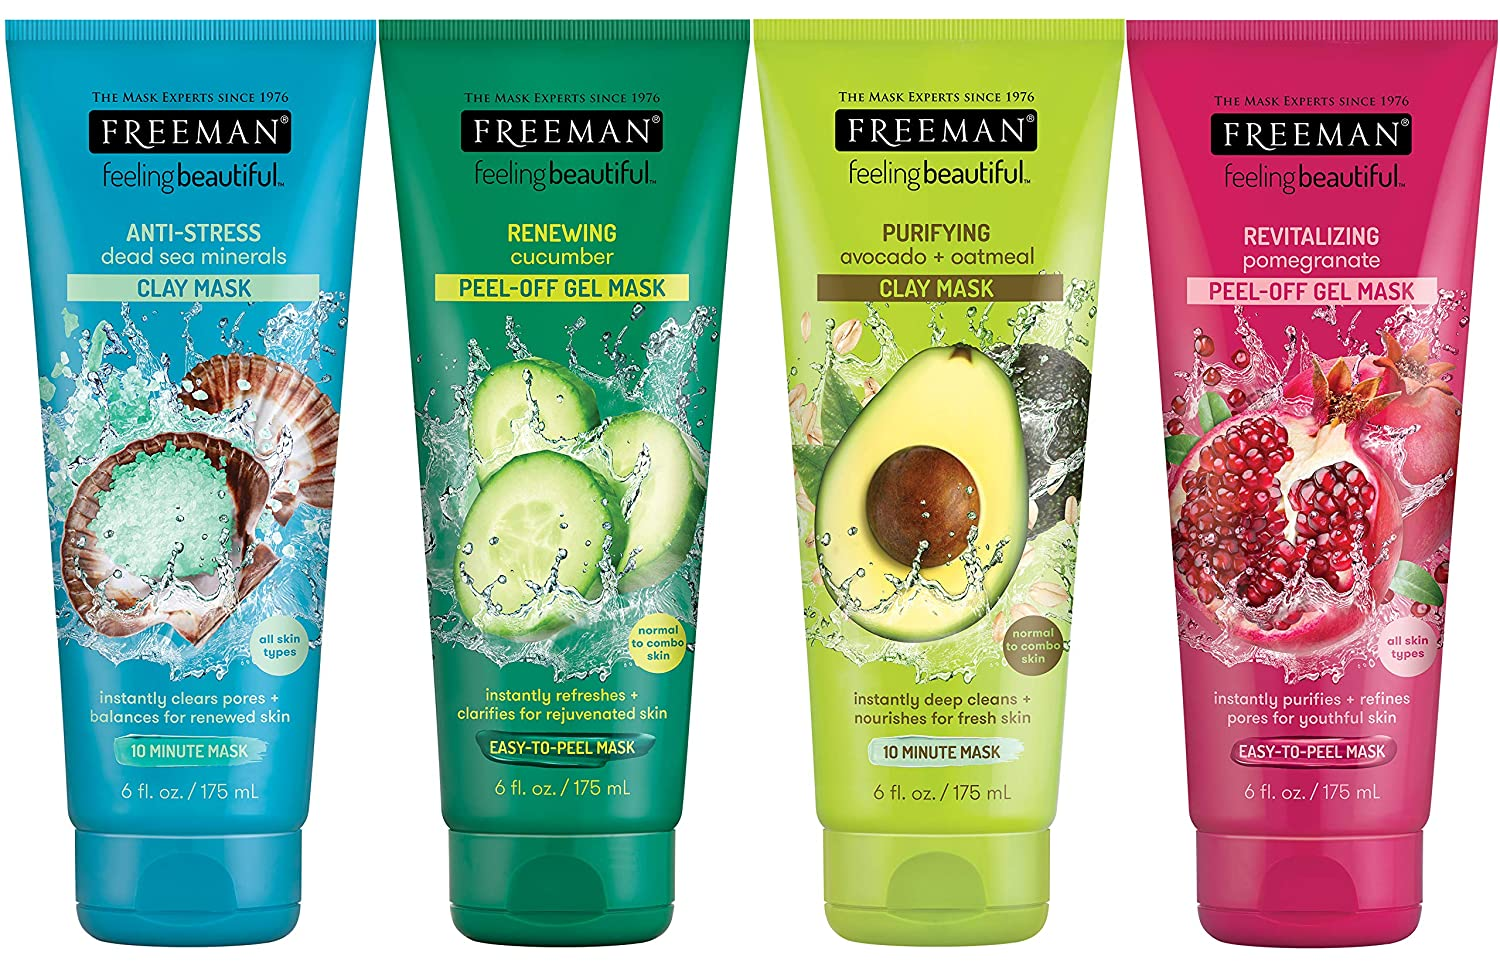 Freeman Facial Mask Variety Bundle, 6 fl oz (Pack of 4) includes 1-Tube Dead Sea Minerals Facial Anti-Stress Mask + 1-Tube Cucumber Facial Peel-off Mask + 1-Tube Avocado & Oatmeal Facial Clay Mask + 1-Tube Pomegranate Facial Revealing Peel-Off Mask